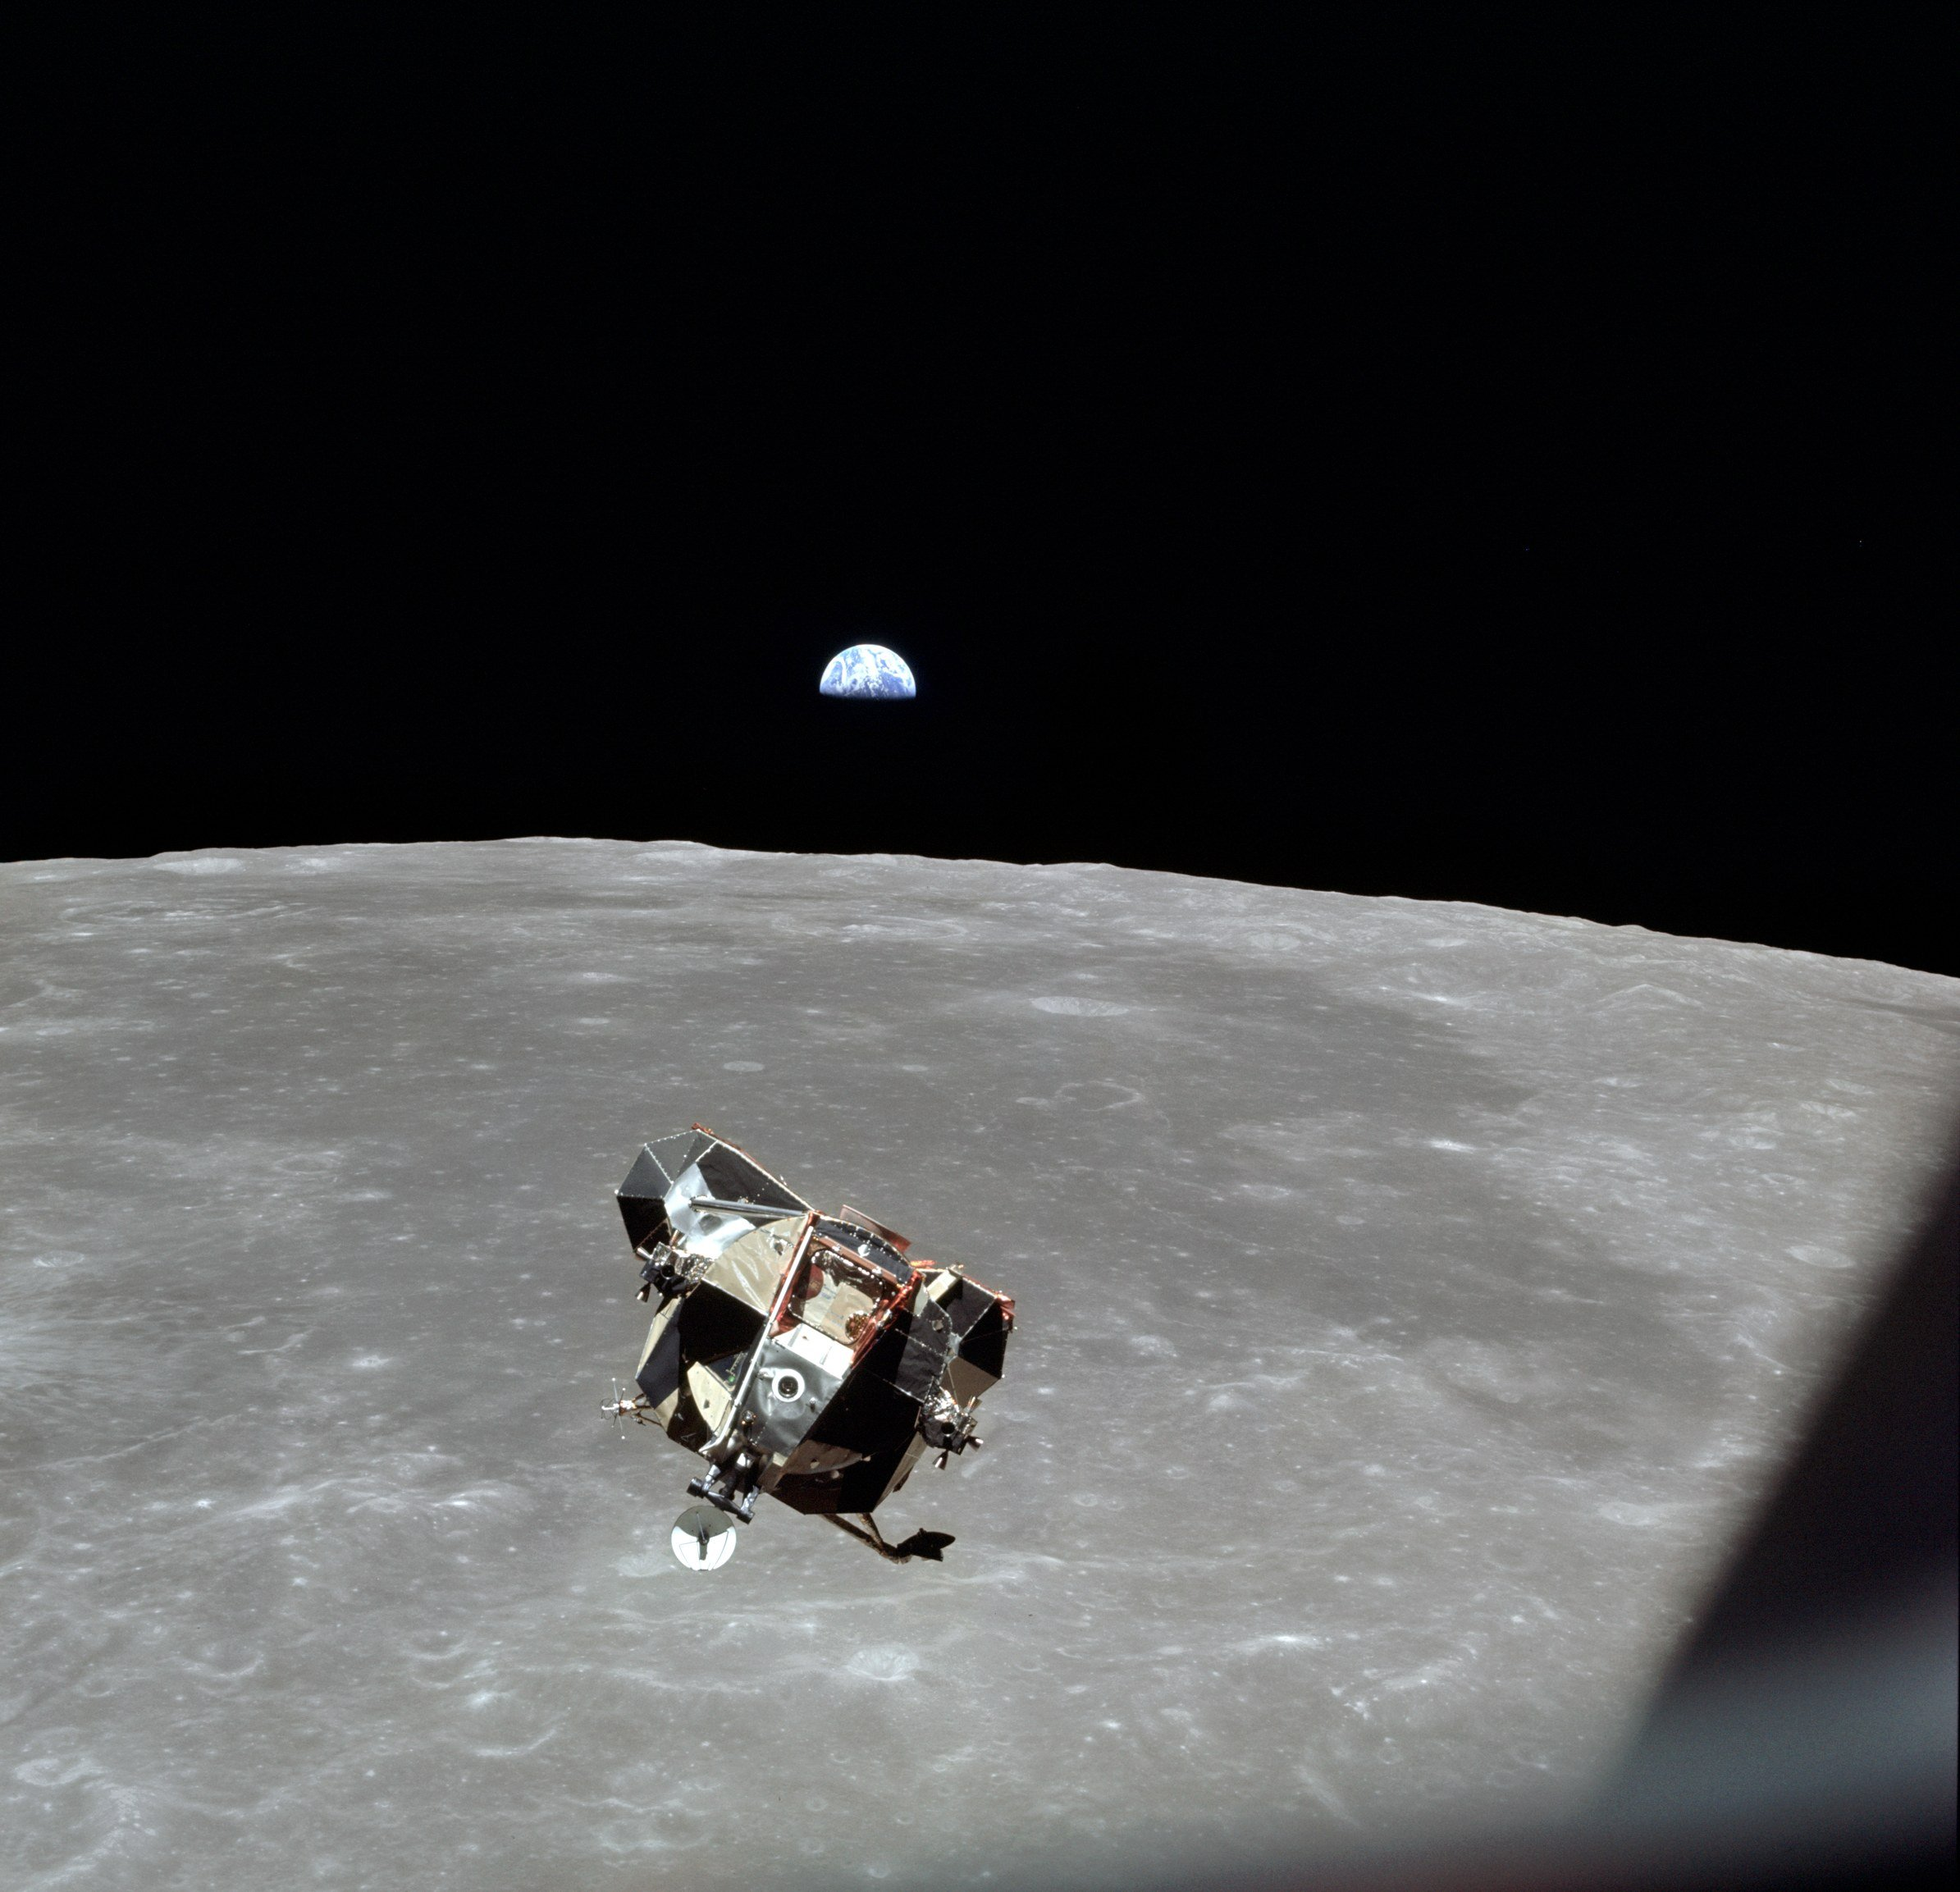 apollo 11 mission landing on the moon - photo #6